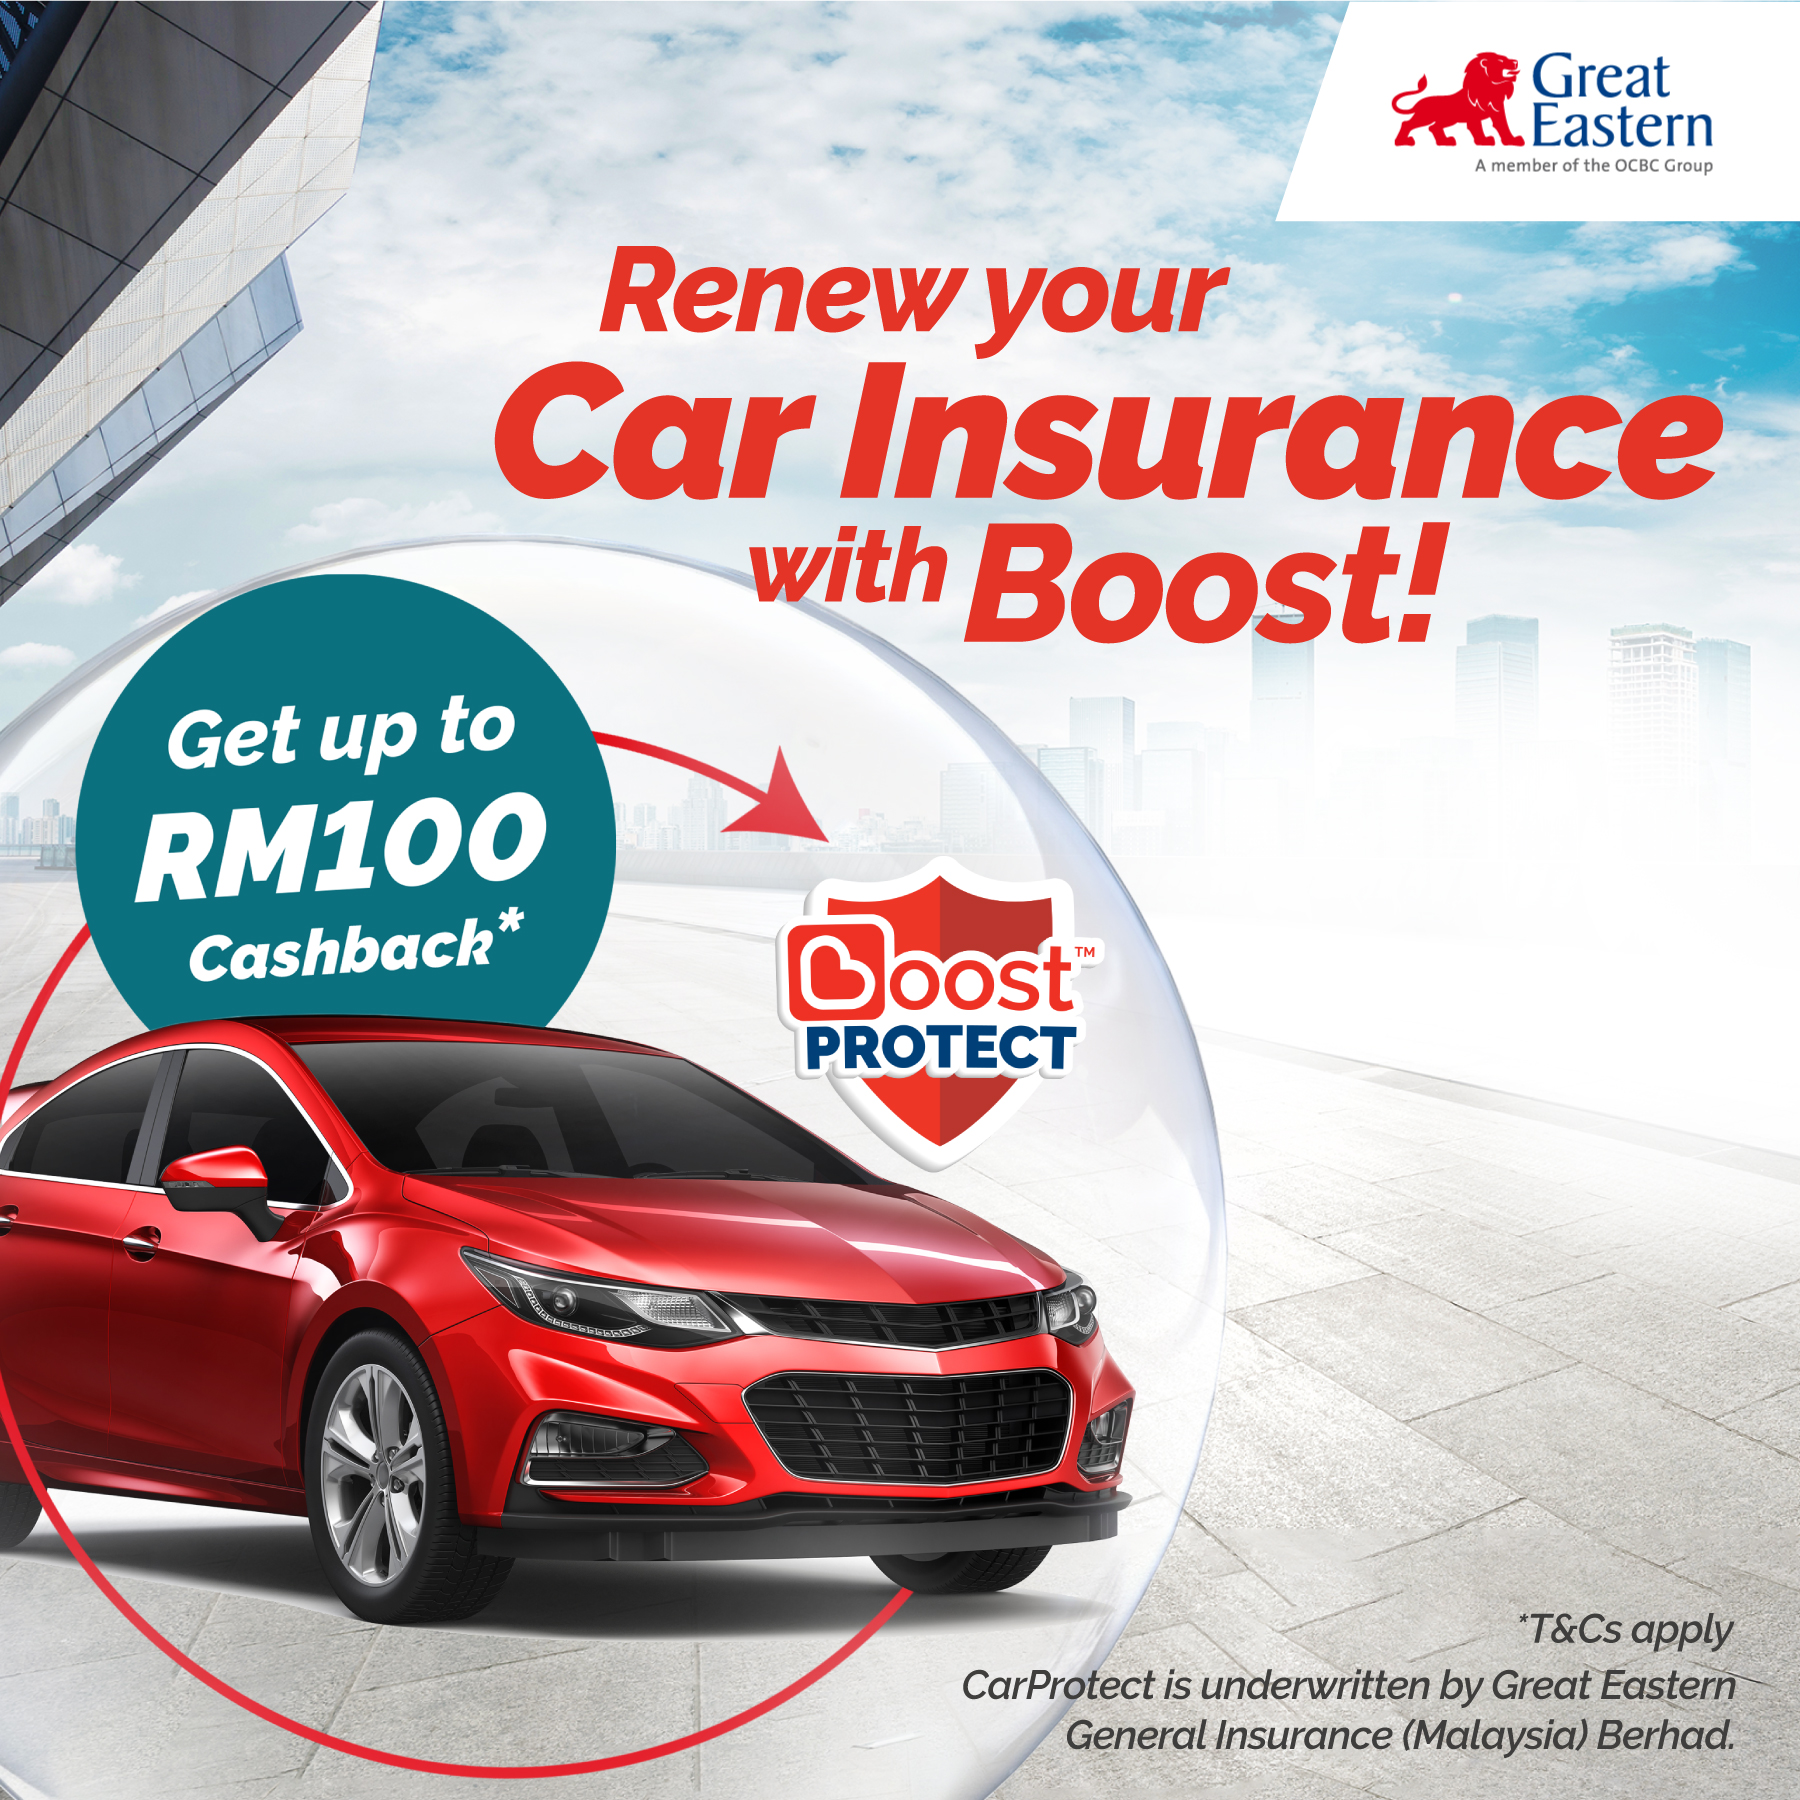 Boost's new car insurance 'CarProtect' offers customizable coverage and a new in-app Emergency Button with 24-7 access to car assistance